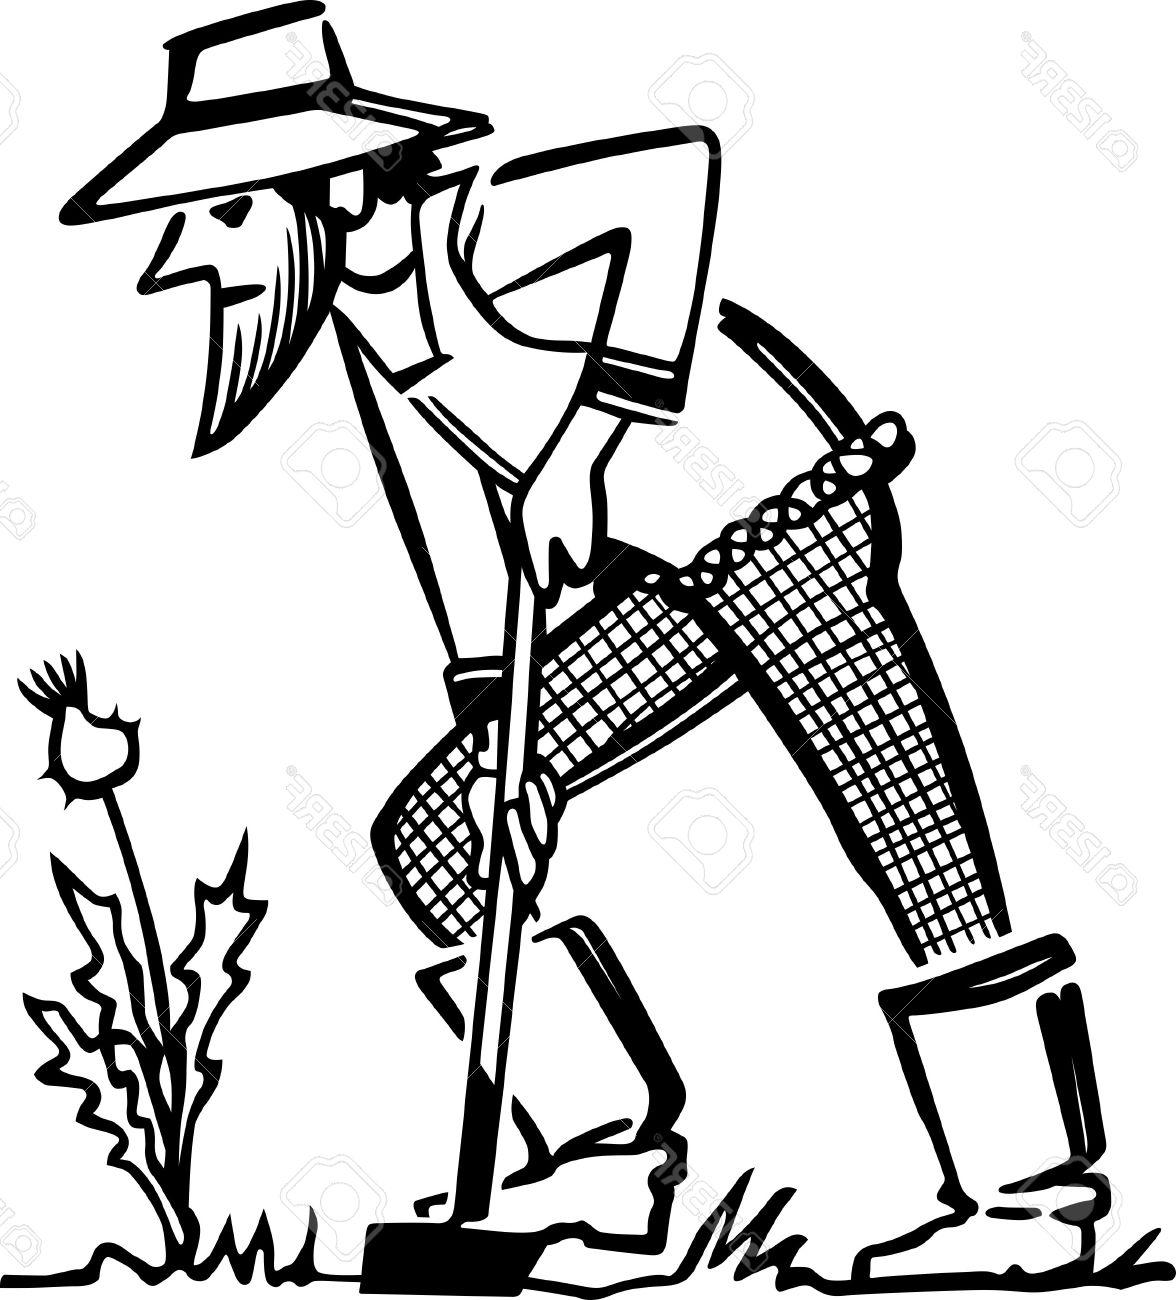 farmers drawing at getdrawings com free for personal use farmers rh getdrawings com farmers clipart images farmer clipart images